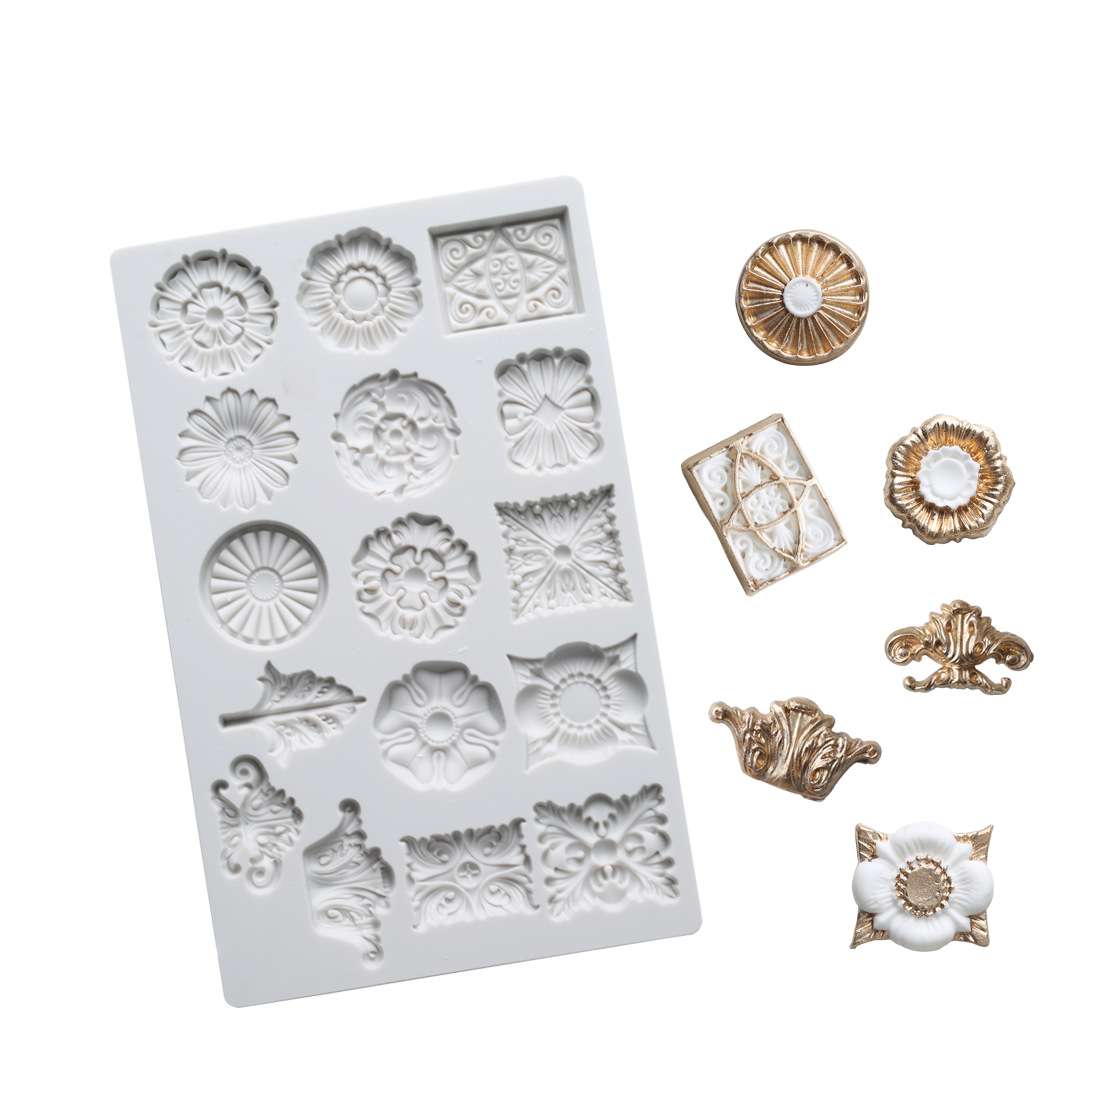 Retro Relief Gemstone Mould <font><b>Silicone</b></font> <font><b>Mold</b></font> <font><b>Fondant</b></font> <font><b>Cake</b></font> <font><b>Decorating</b></font> <font><b>Tool</b></font> Gumpaste Sugarcraft Chocolate Forms Bakeware <font><b>Tools</b></font> K766 image